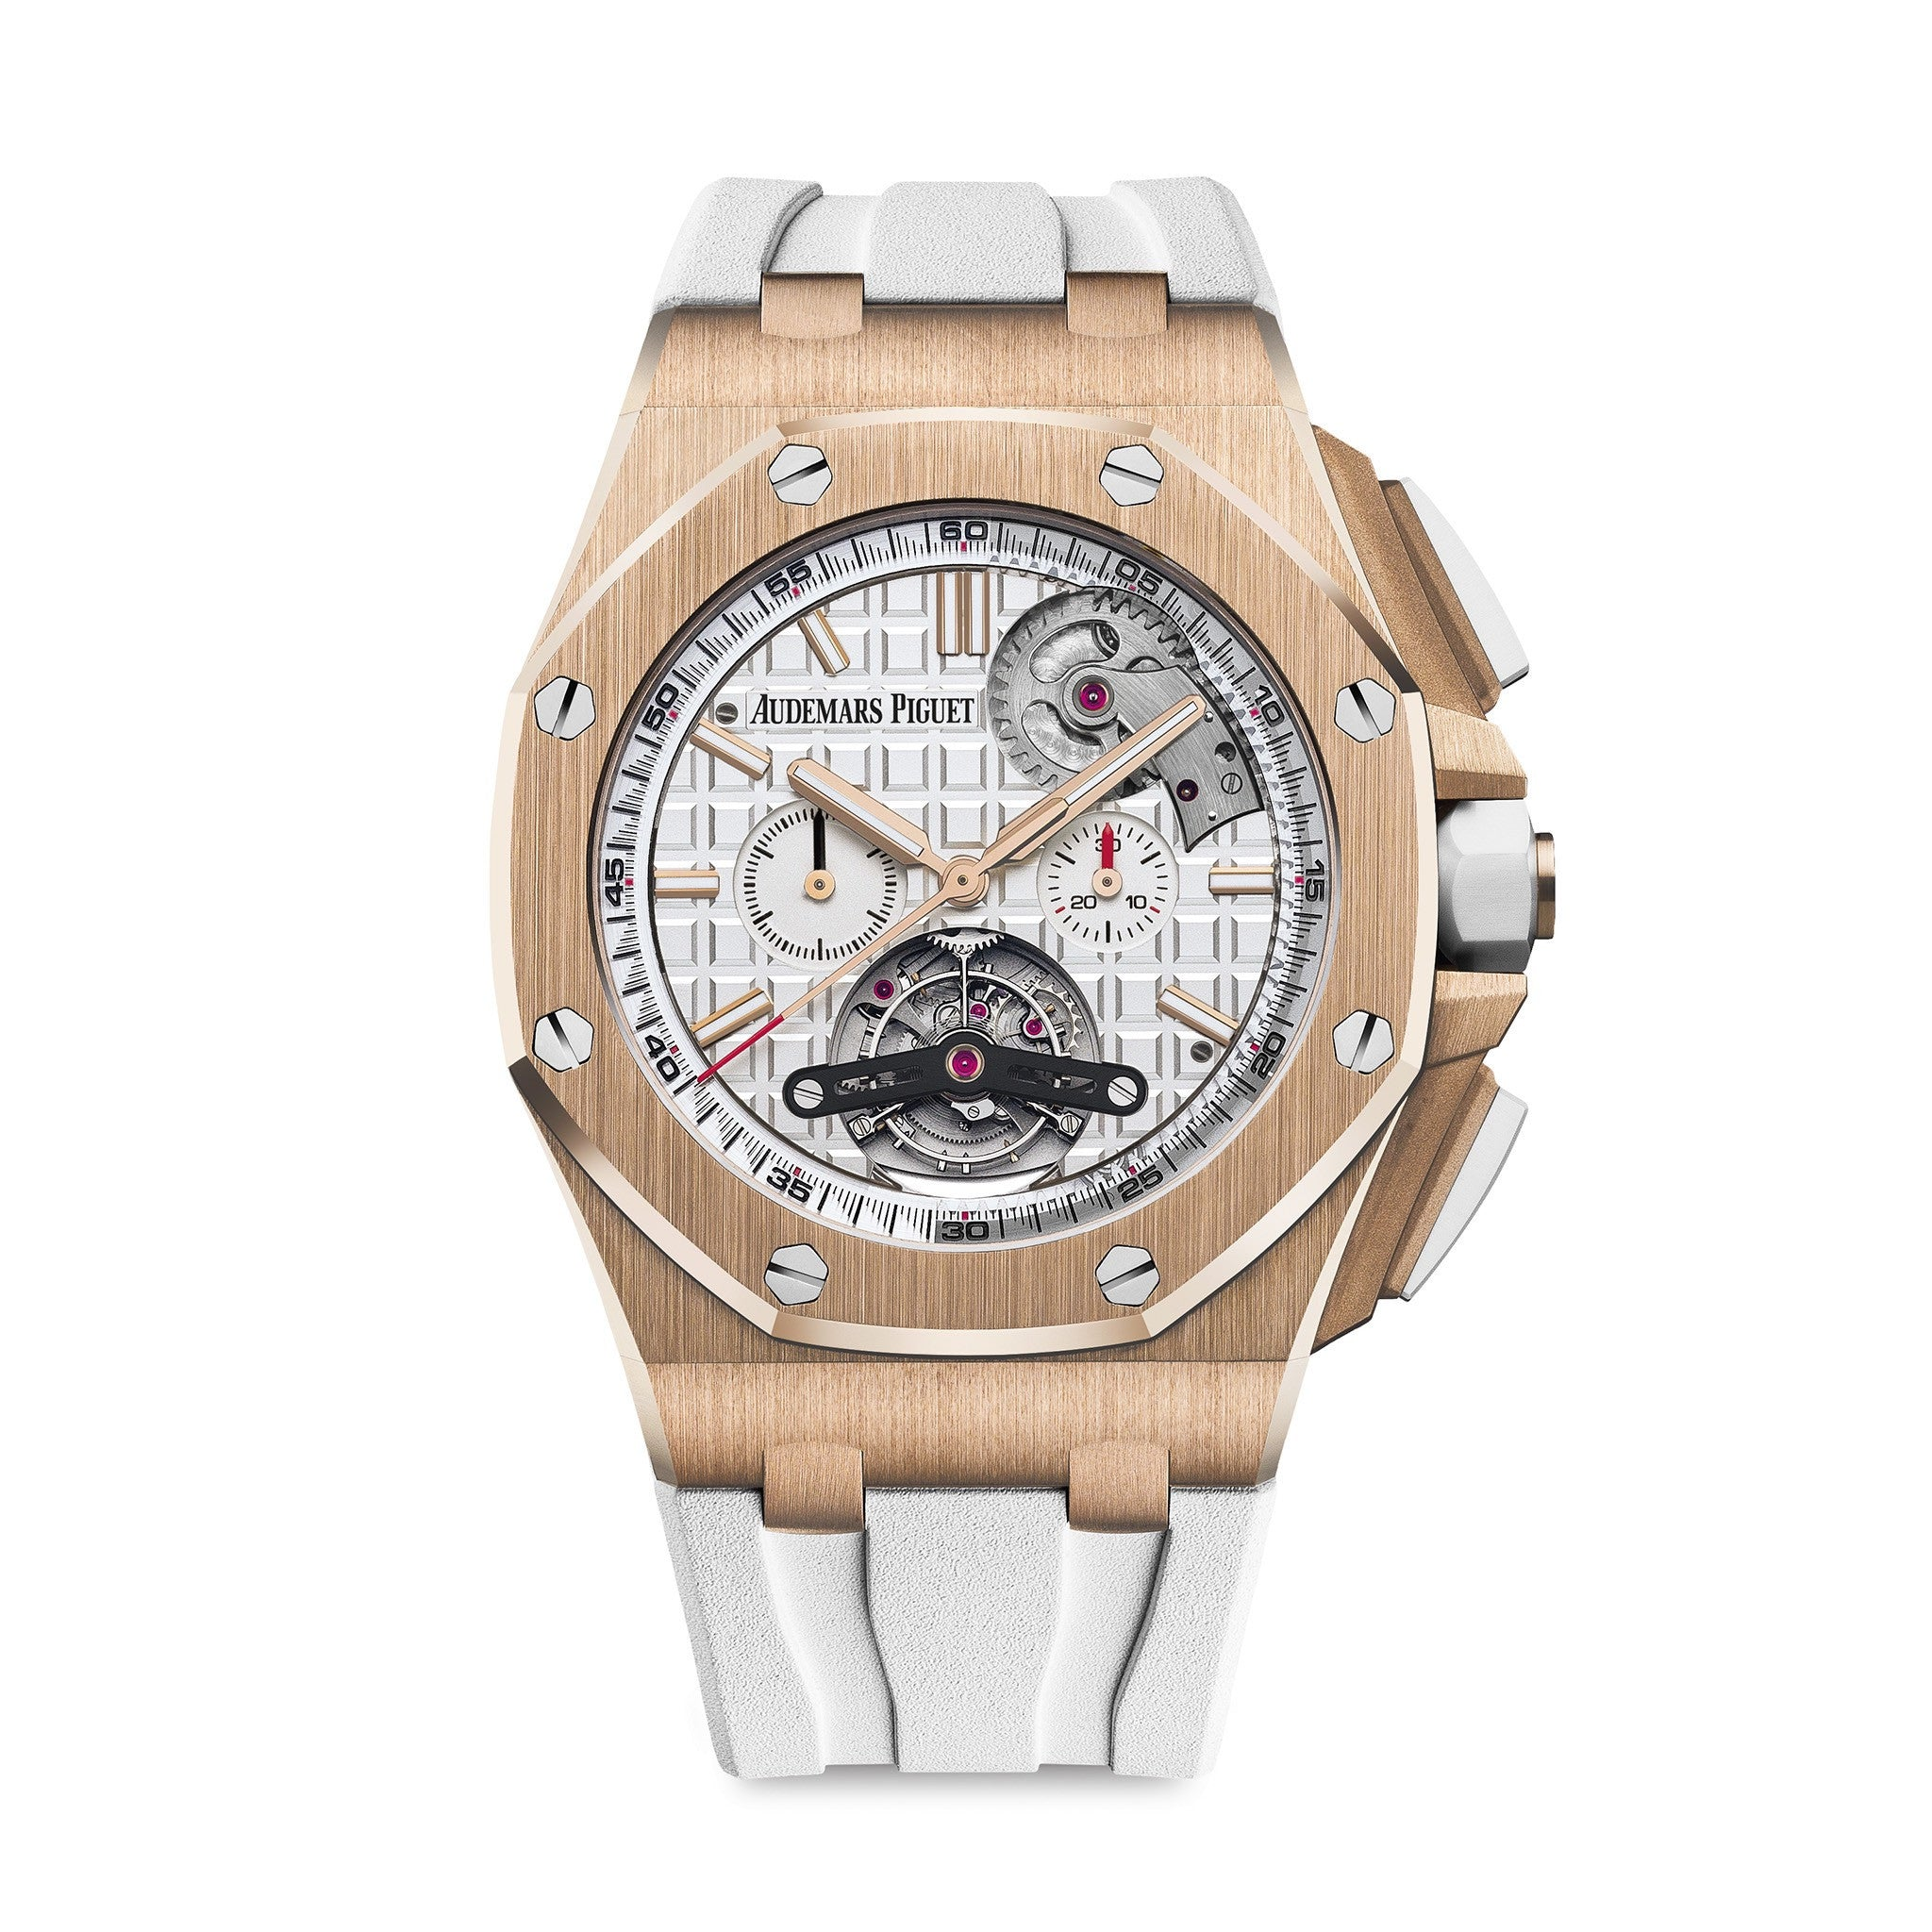 Royal Oak Offshore Tourbillon Chronograph Selfwinding 26540OR.OO.A010CA.01 - Audemars Piguet